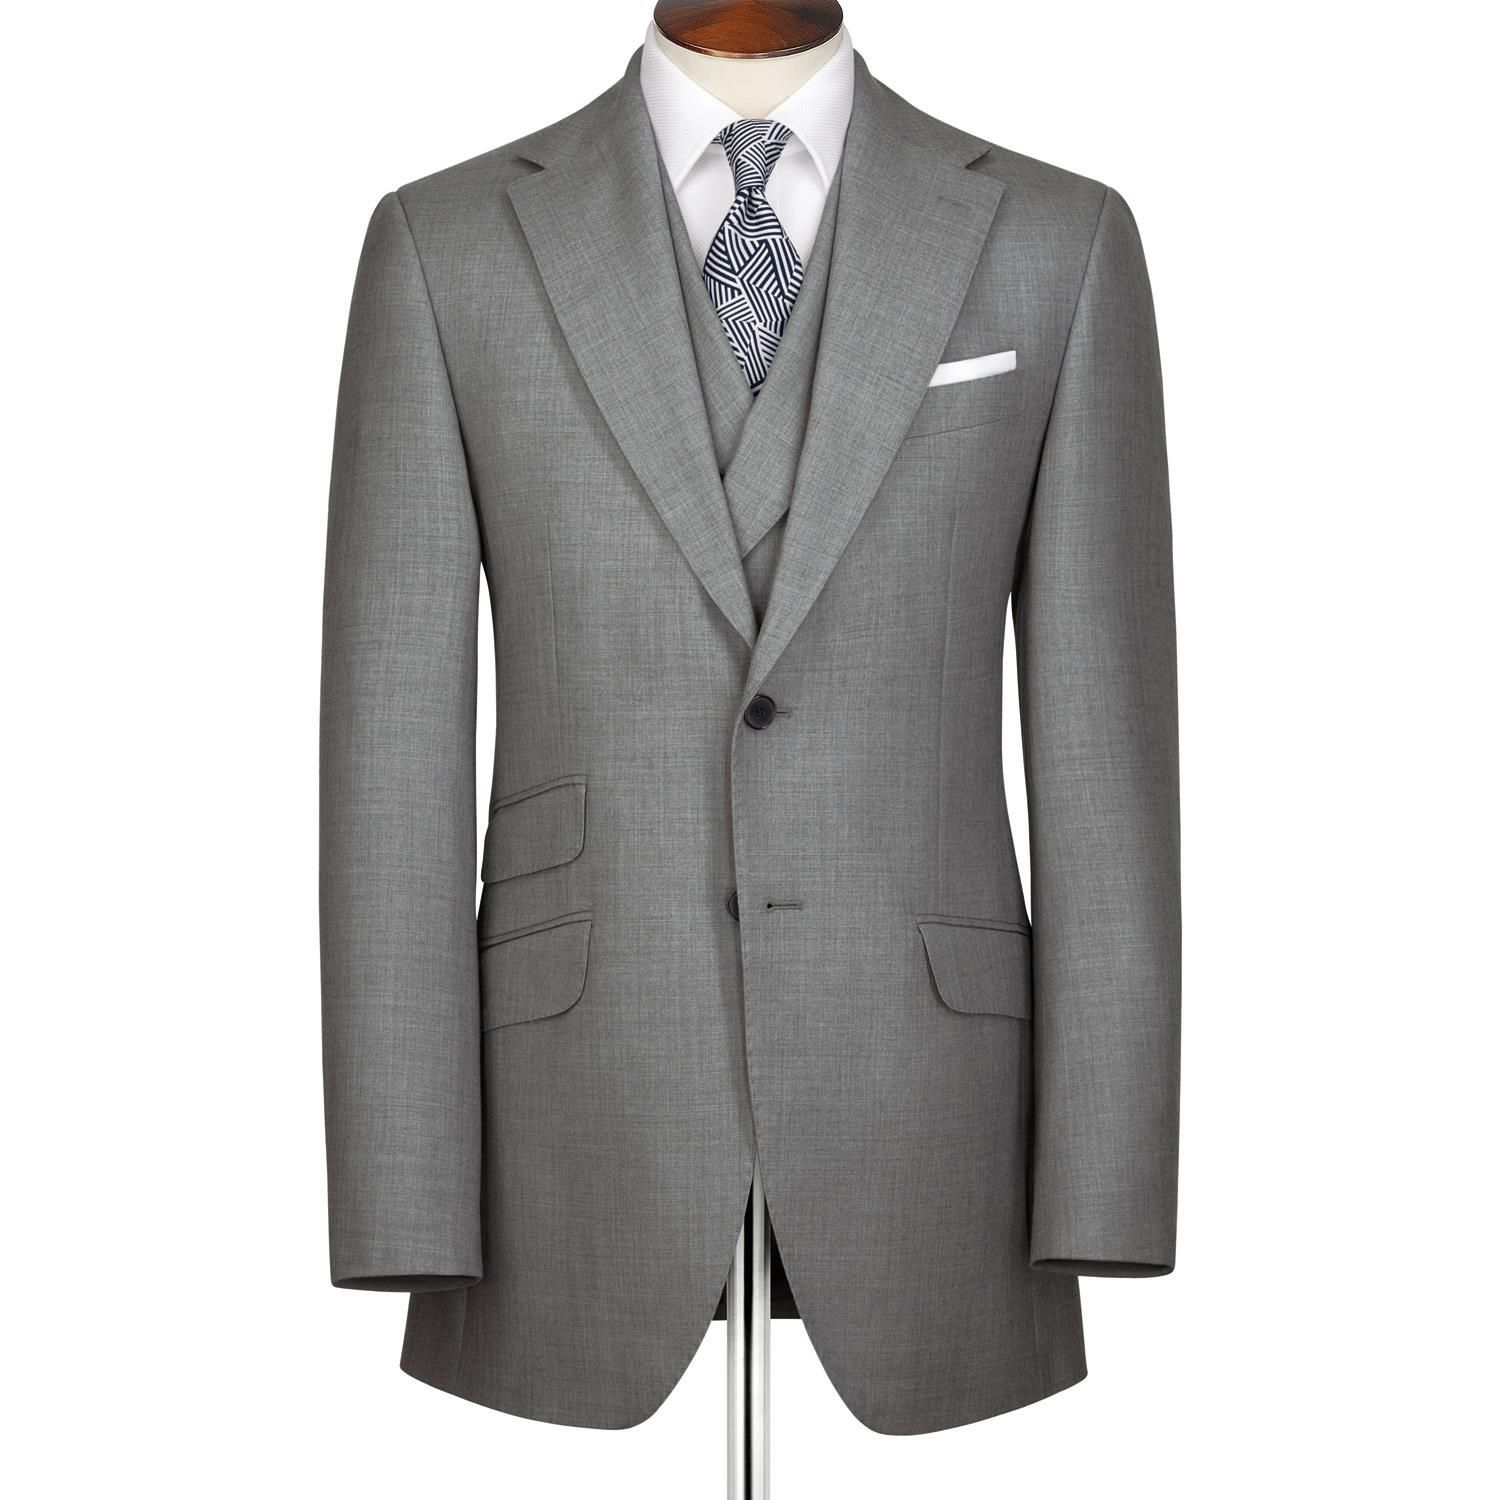 Silver grey British Panama Slim fit luxury suit | Men's ...